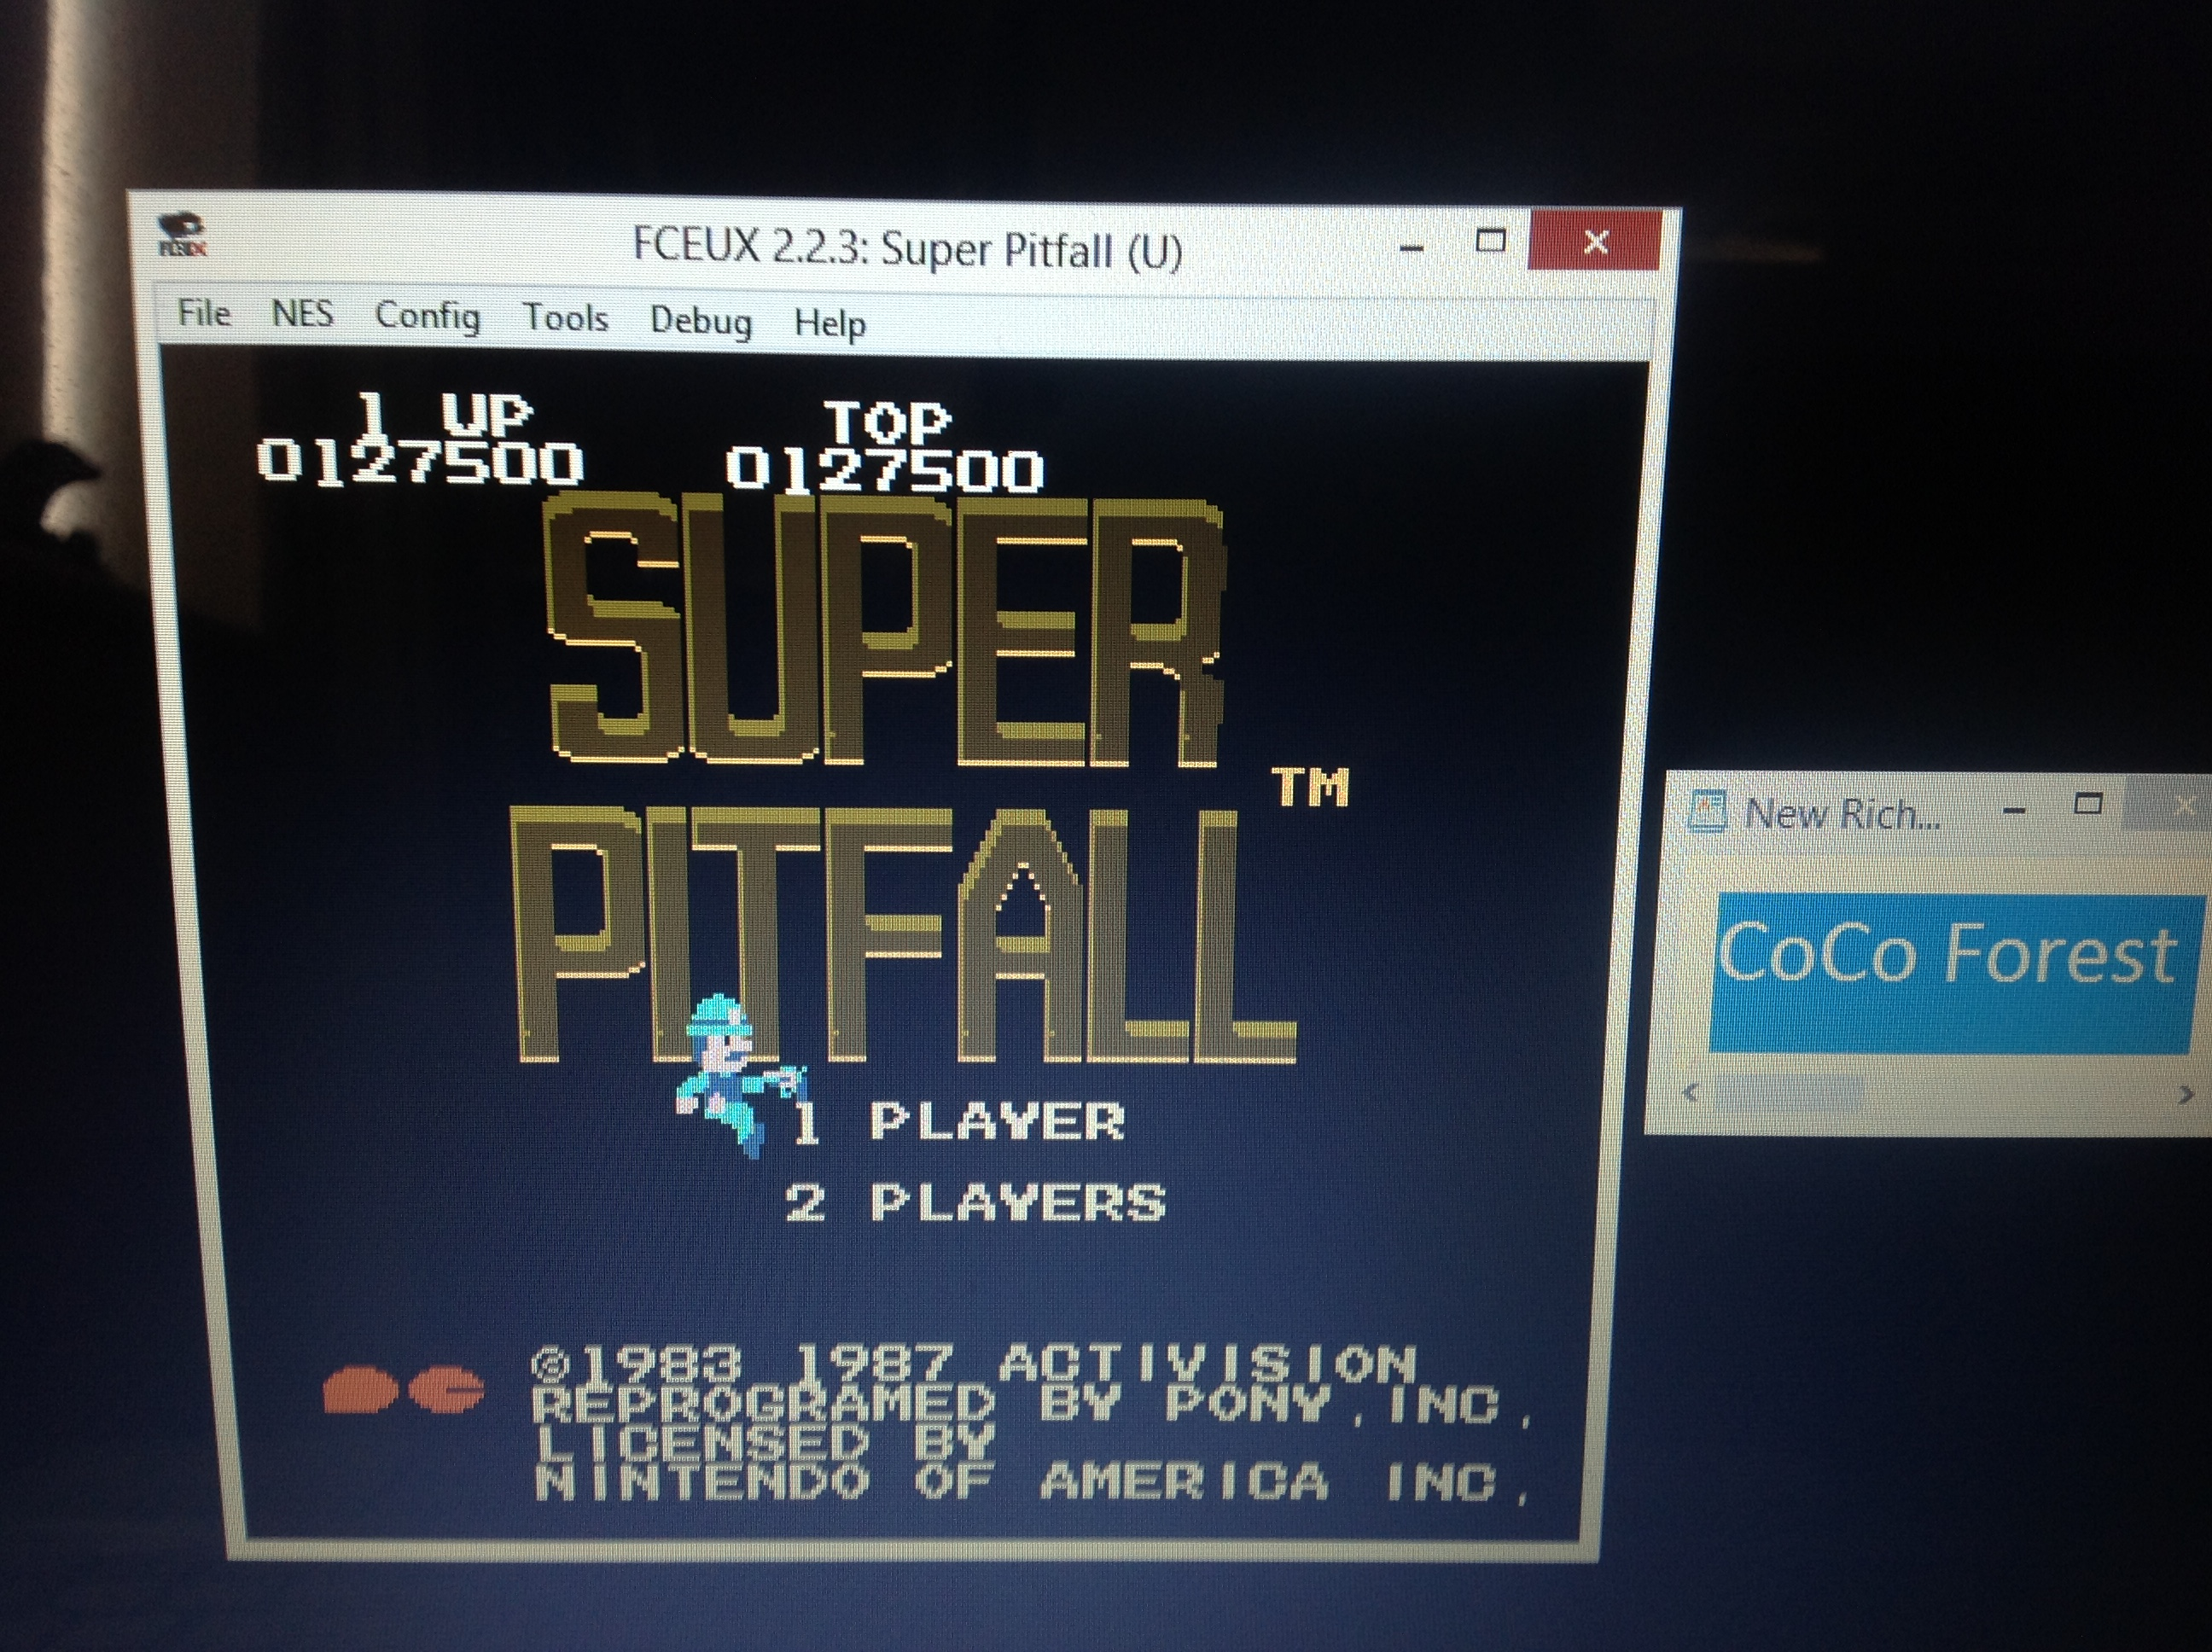 CoCoForest: Super Pitfall (NES/Famicom Emulated) 127,500 points on 2018-10-07 05:47:57